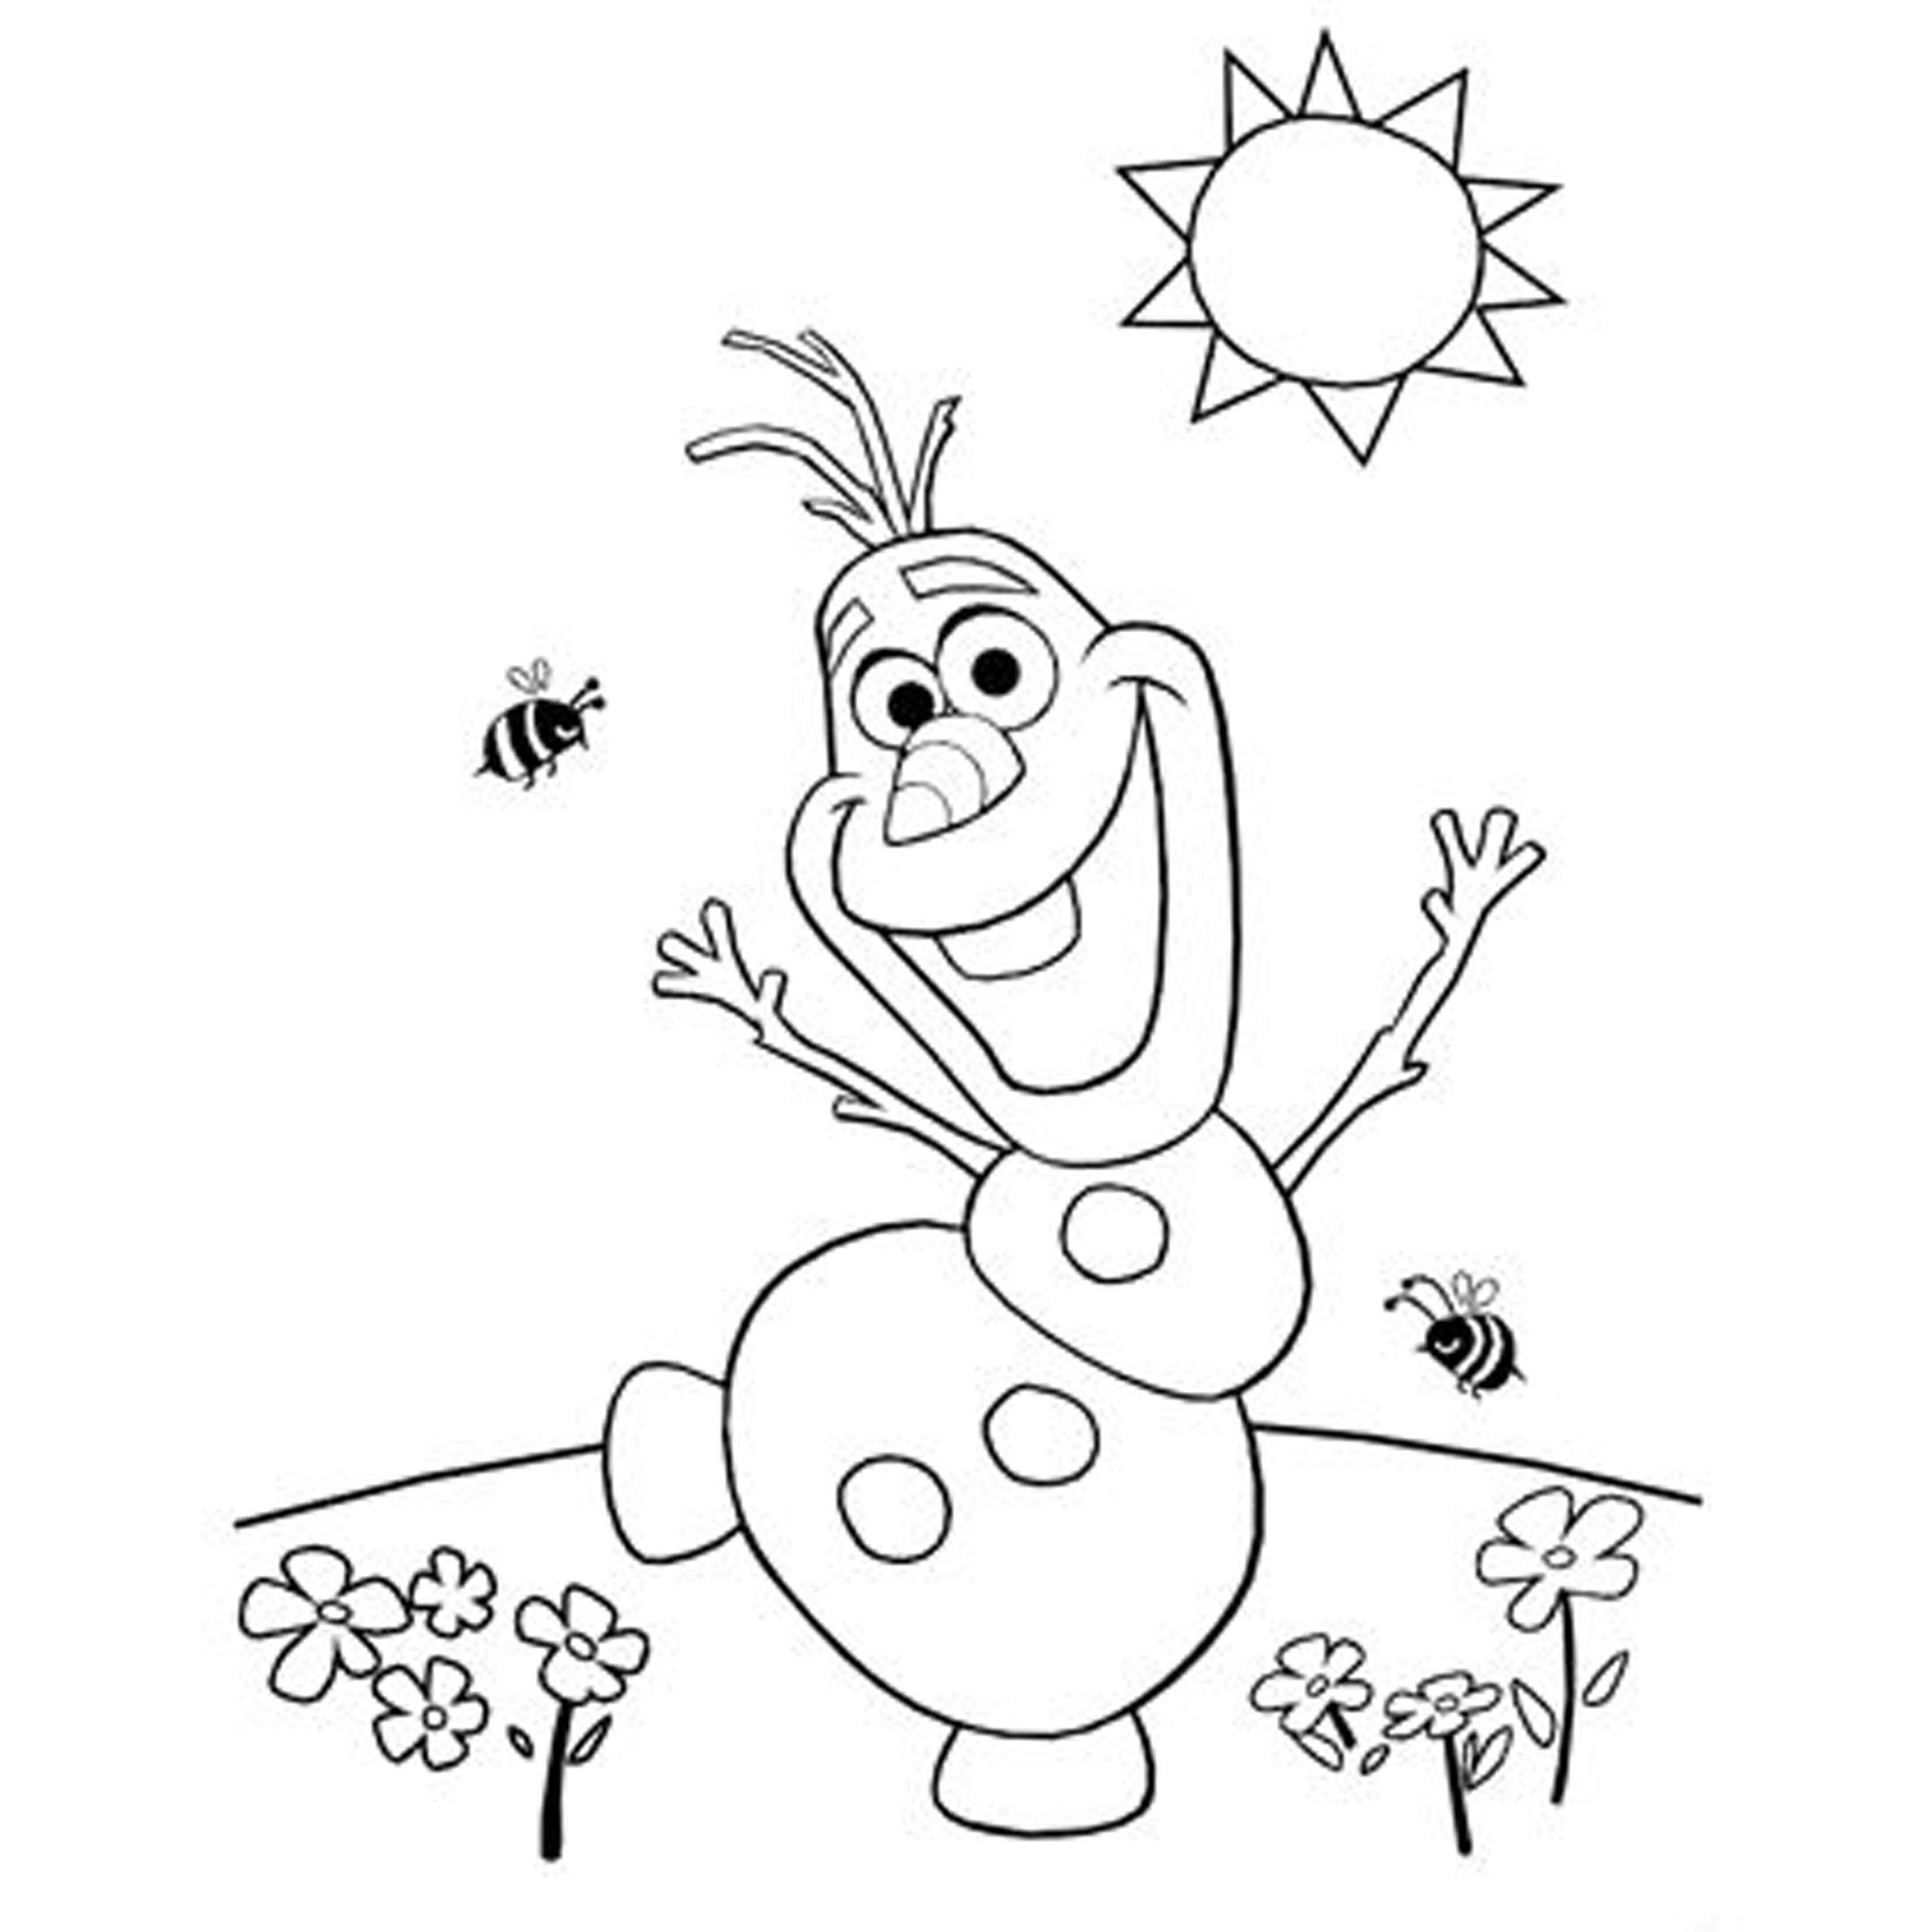 Printable Coloring Pages Frozen Olaf World Of Printable And Chart Throughout Printable Coloring Pag Elsa Coloring Pages Frozen Coloring Frozen Coloring Pages